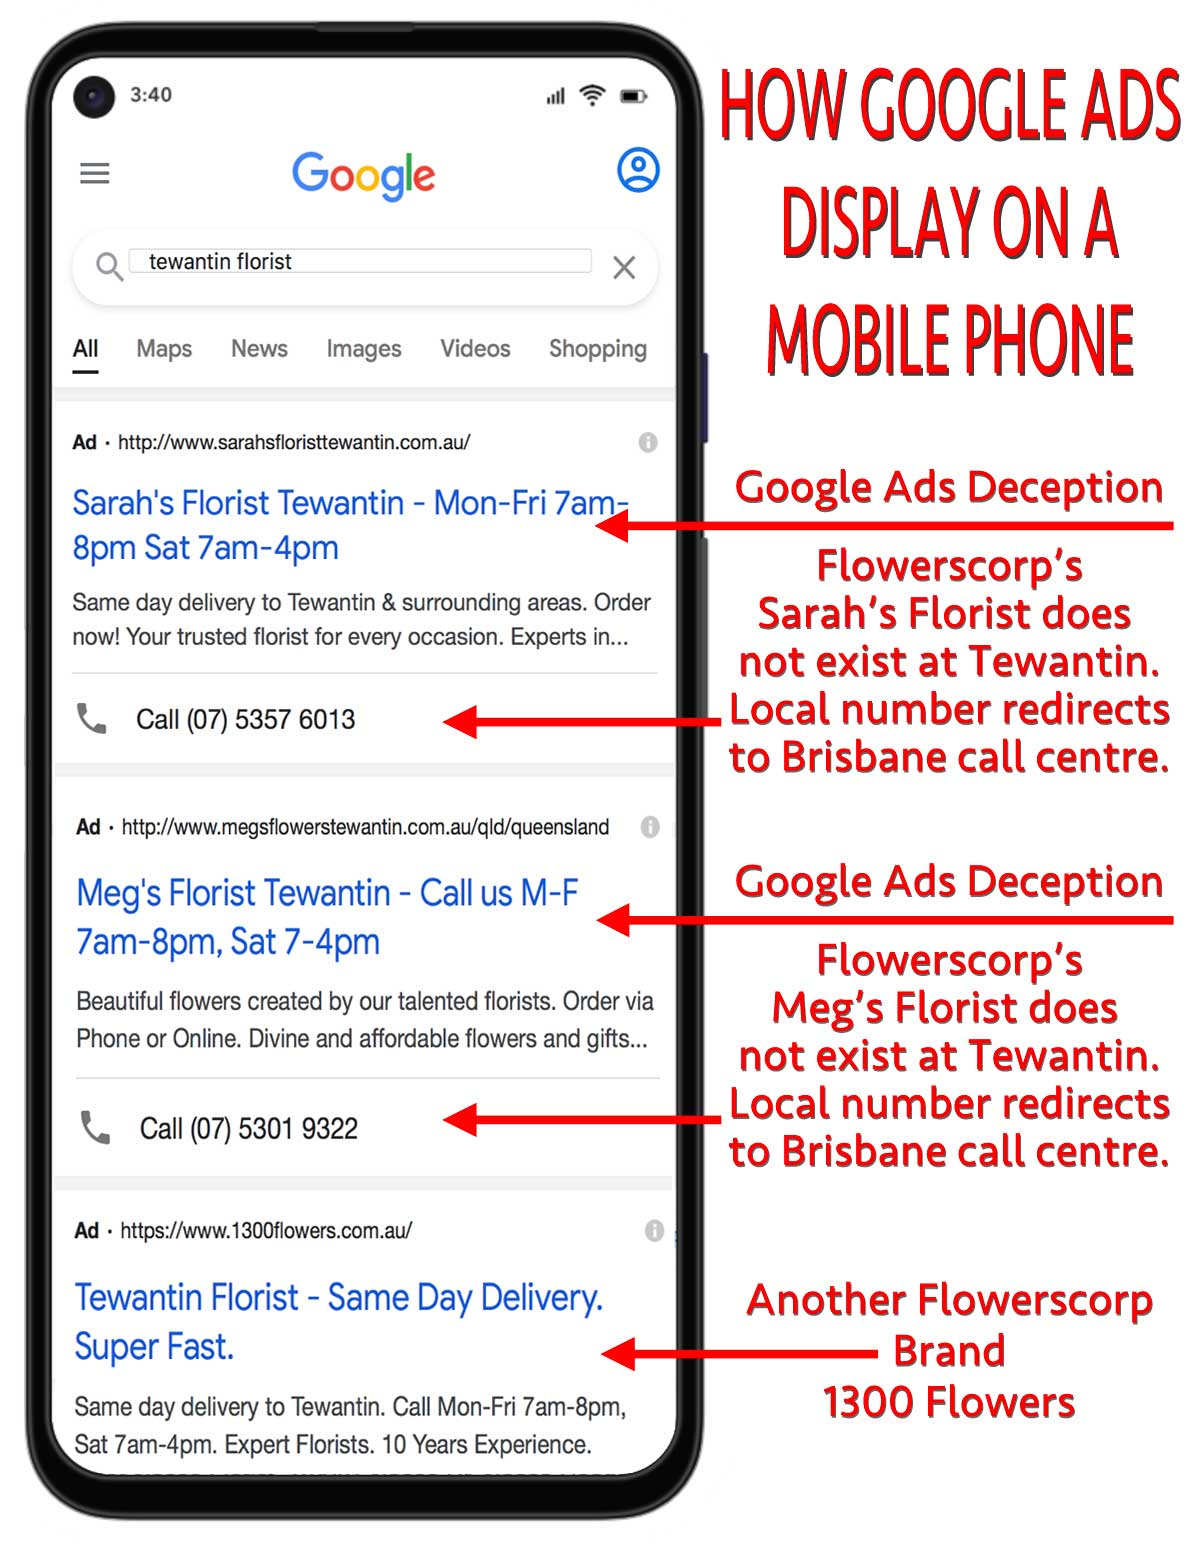 GOOGLE ADS MOBILE PHONE